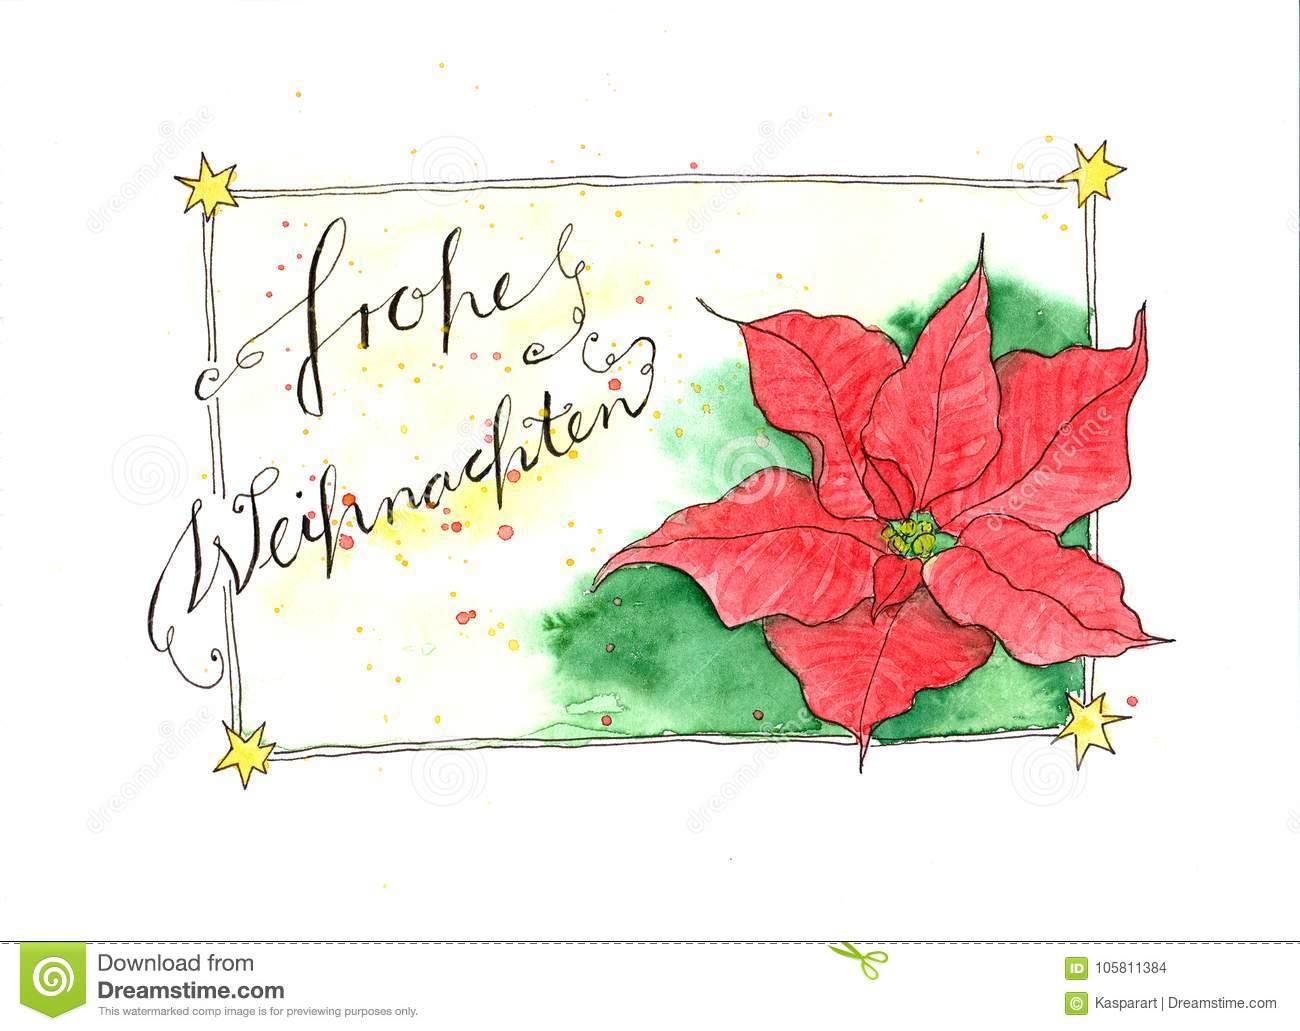 Text Frohe Weihnachten.Watercolor Painting Christmas Card With Poinsettia Flower